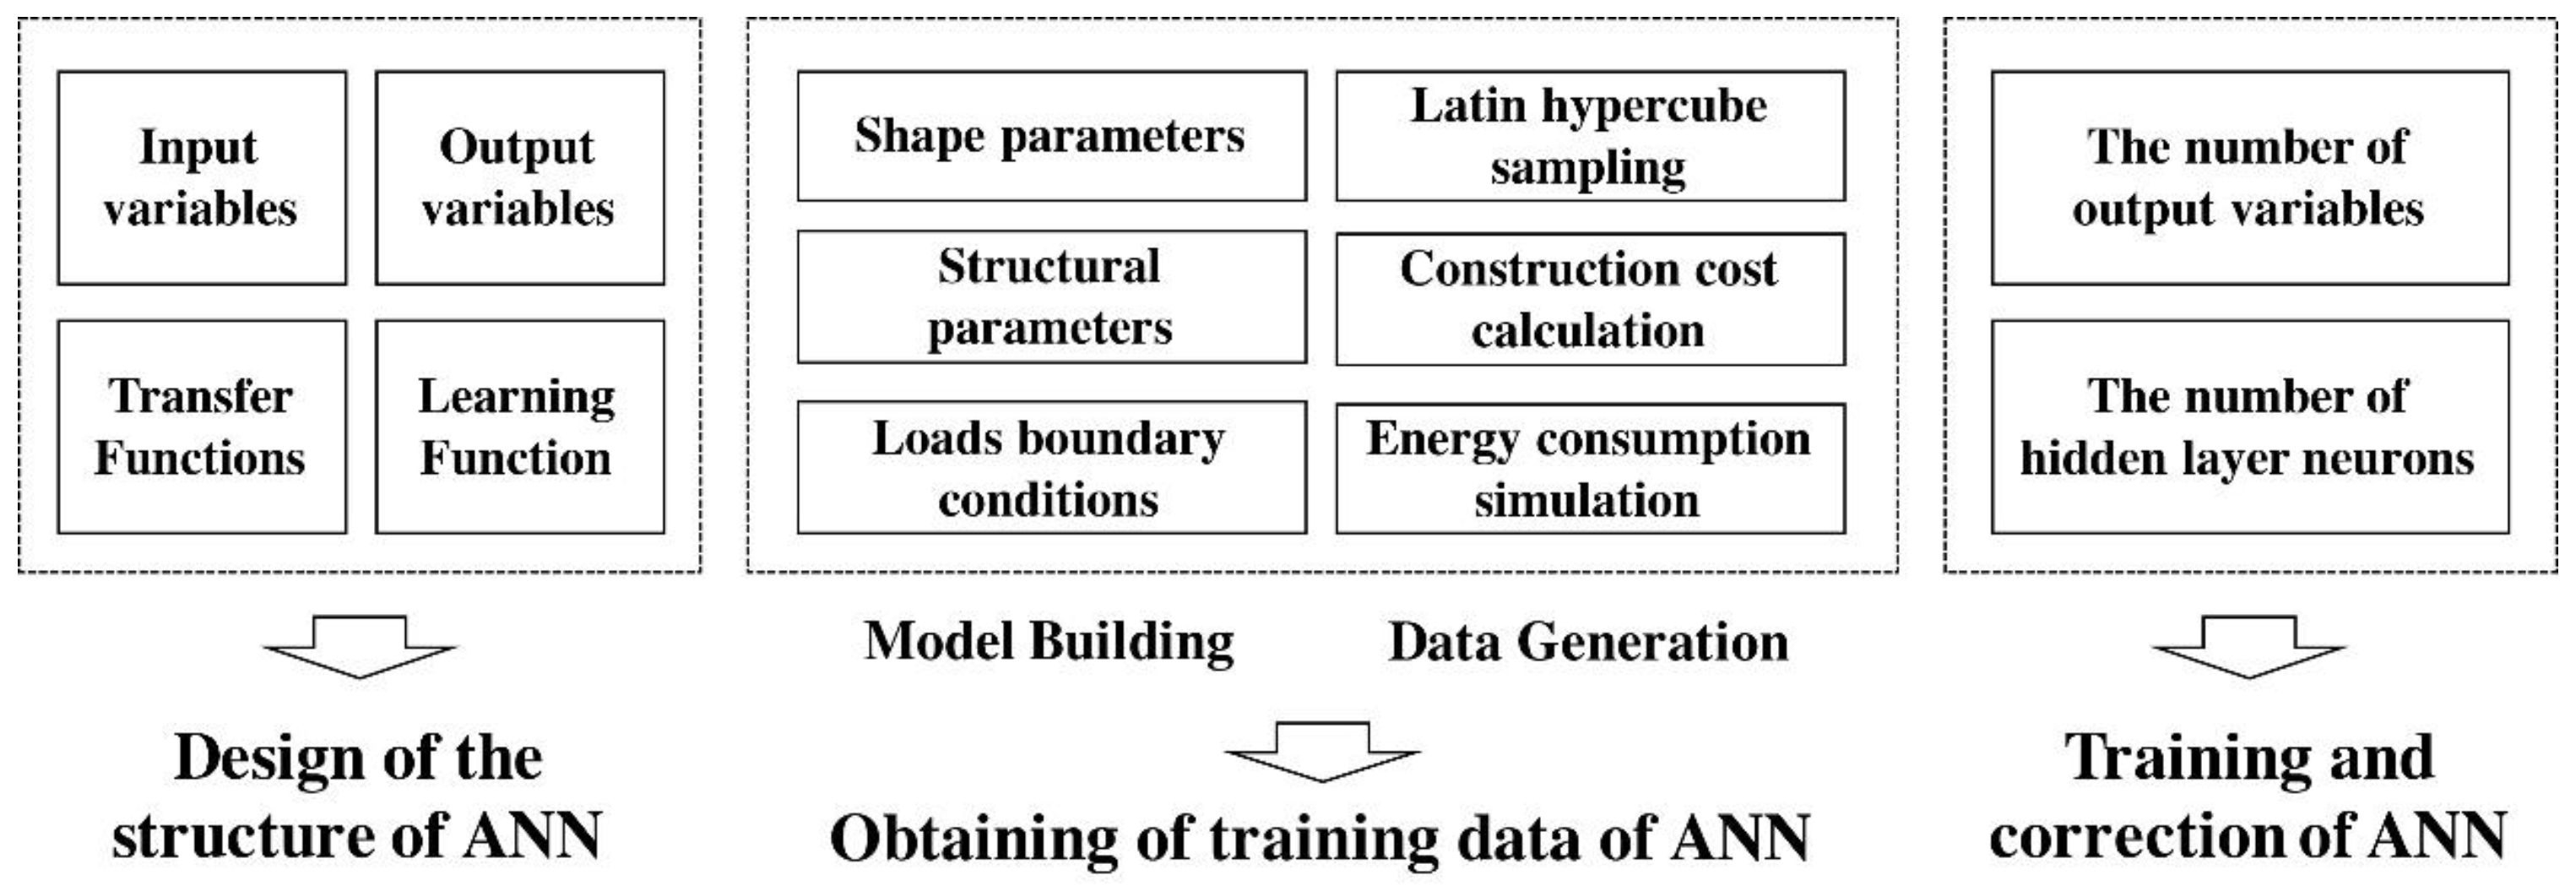 assessment on energy consumption Energy demand of the production system can be obtained from energy profiles, the energy consumption records of each manufacturing process during a process cycle.